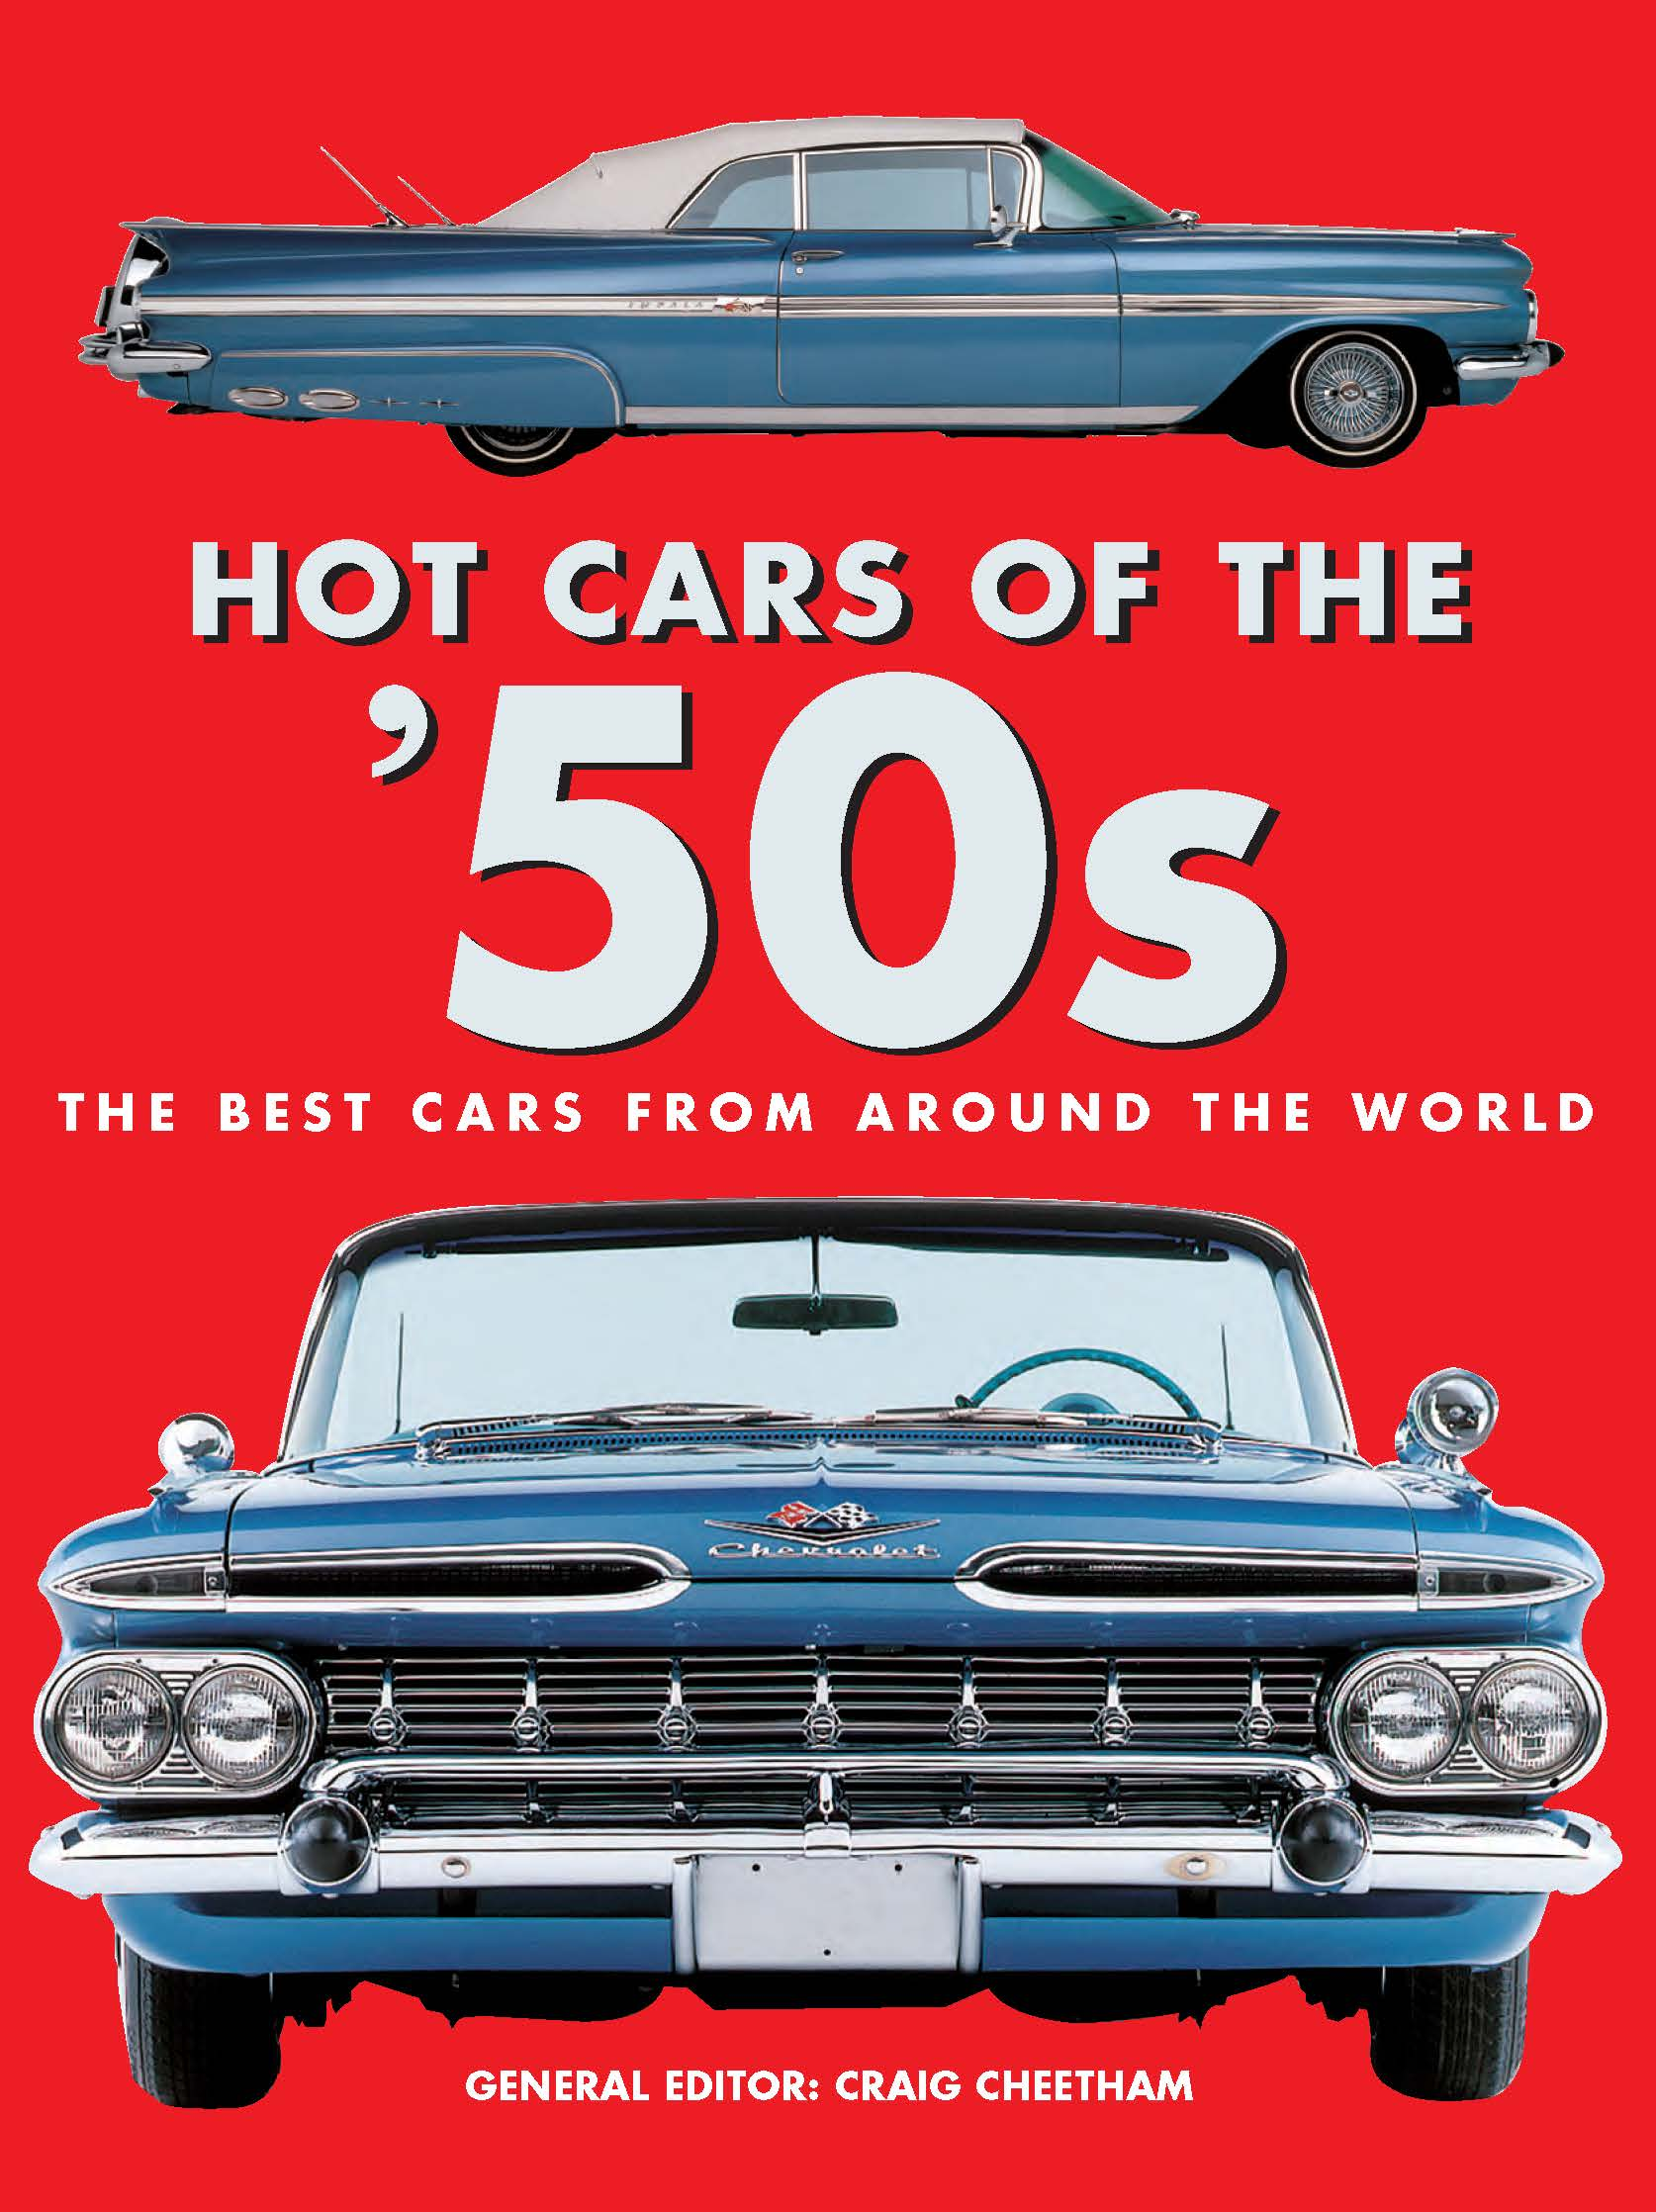 Hot Cars of the 50s